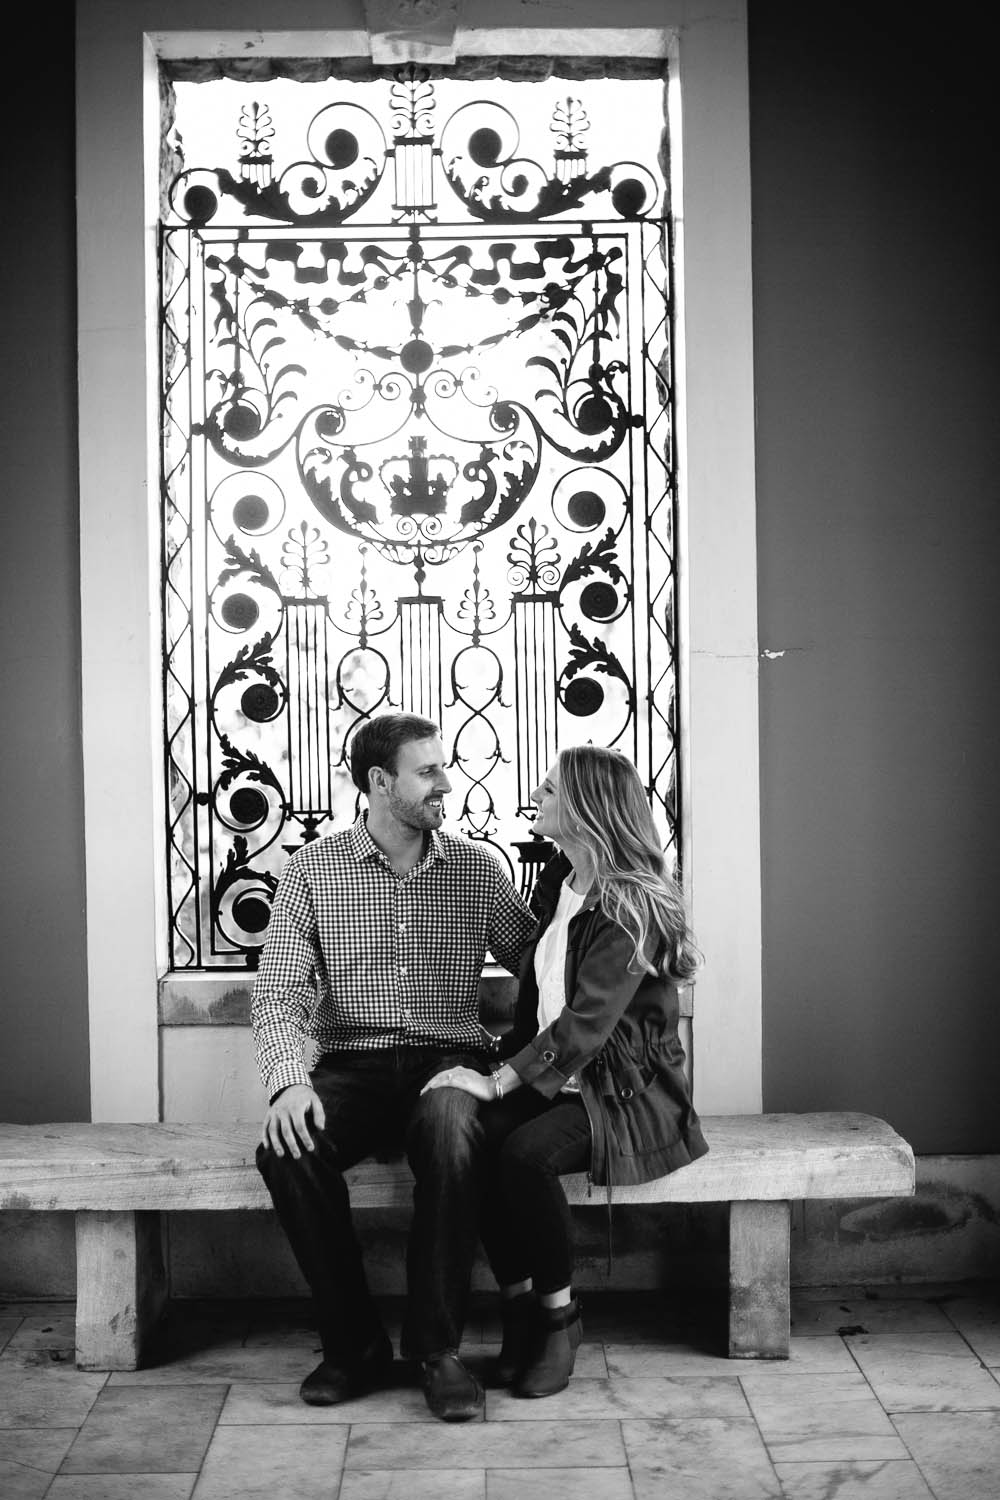 cheekwood film engagement photography natural warm real wedding photographer ©2016abigailbobophotography-13.jpg